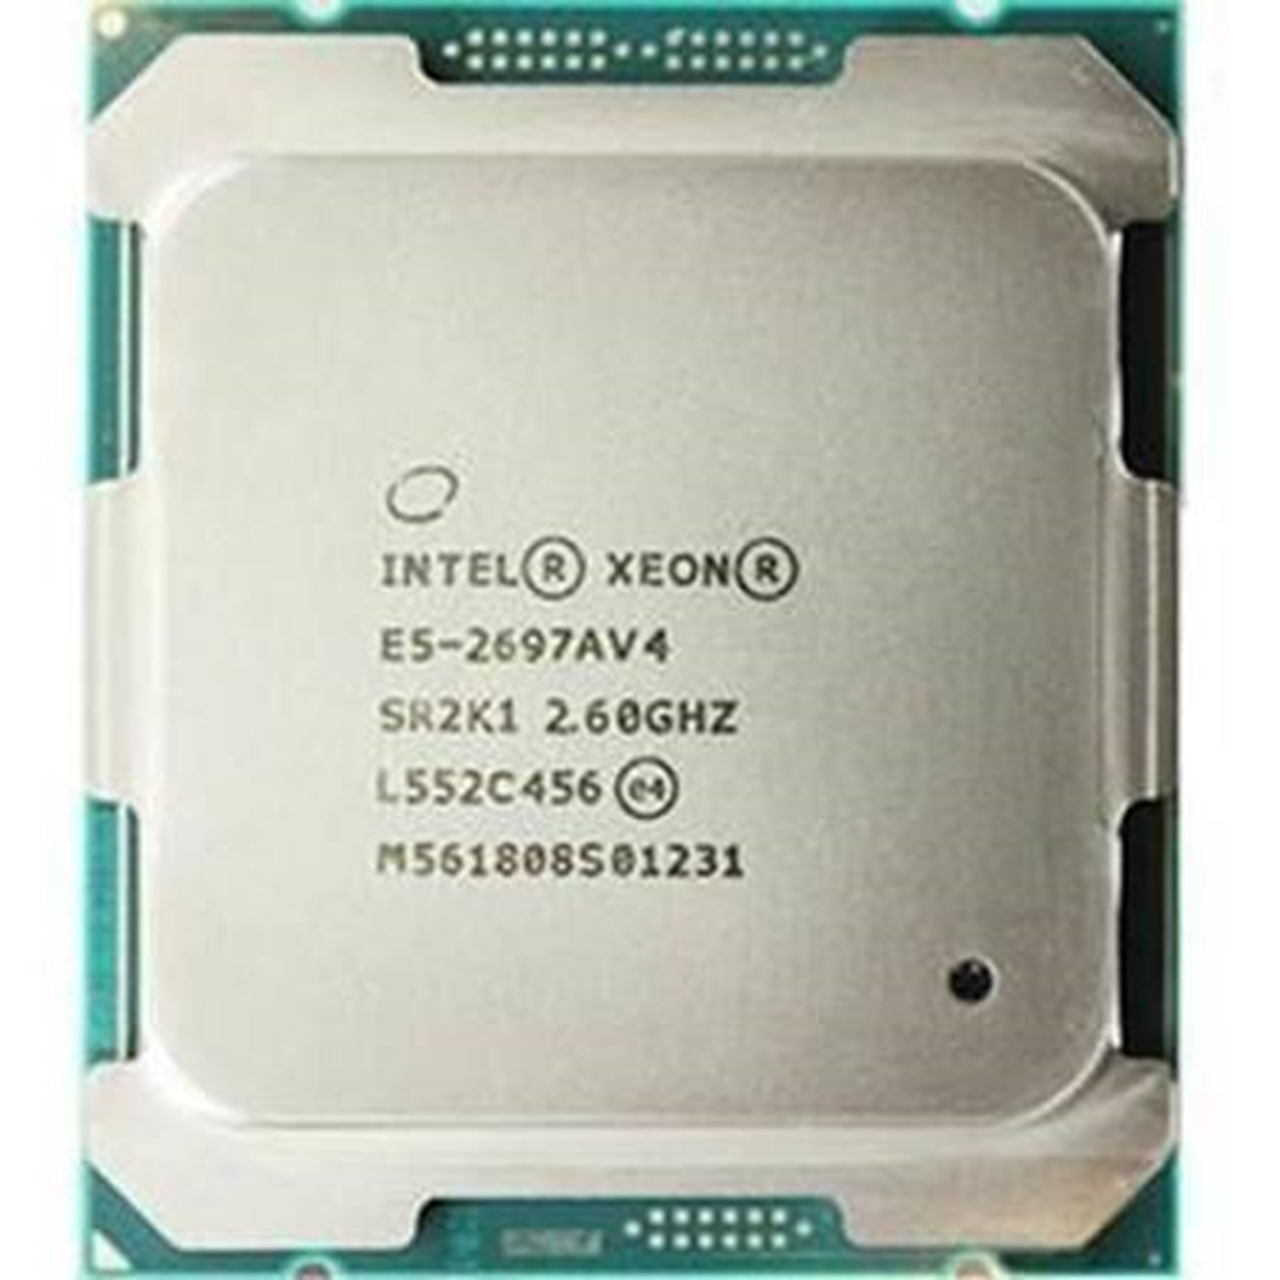 Details about 077DY Dell Intel Xeon E5-2697A v4 2 60GHz (077DY)